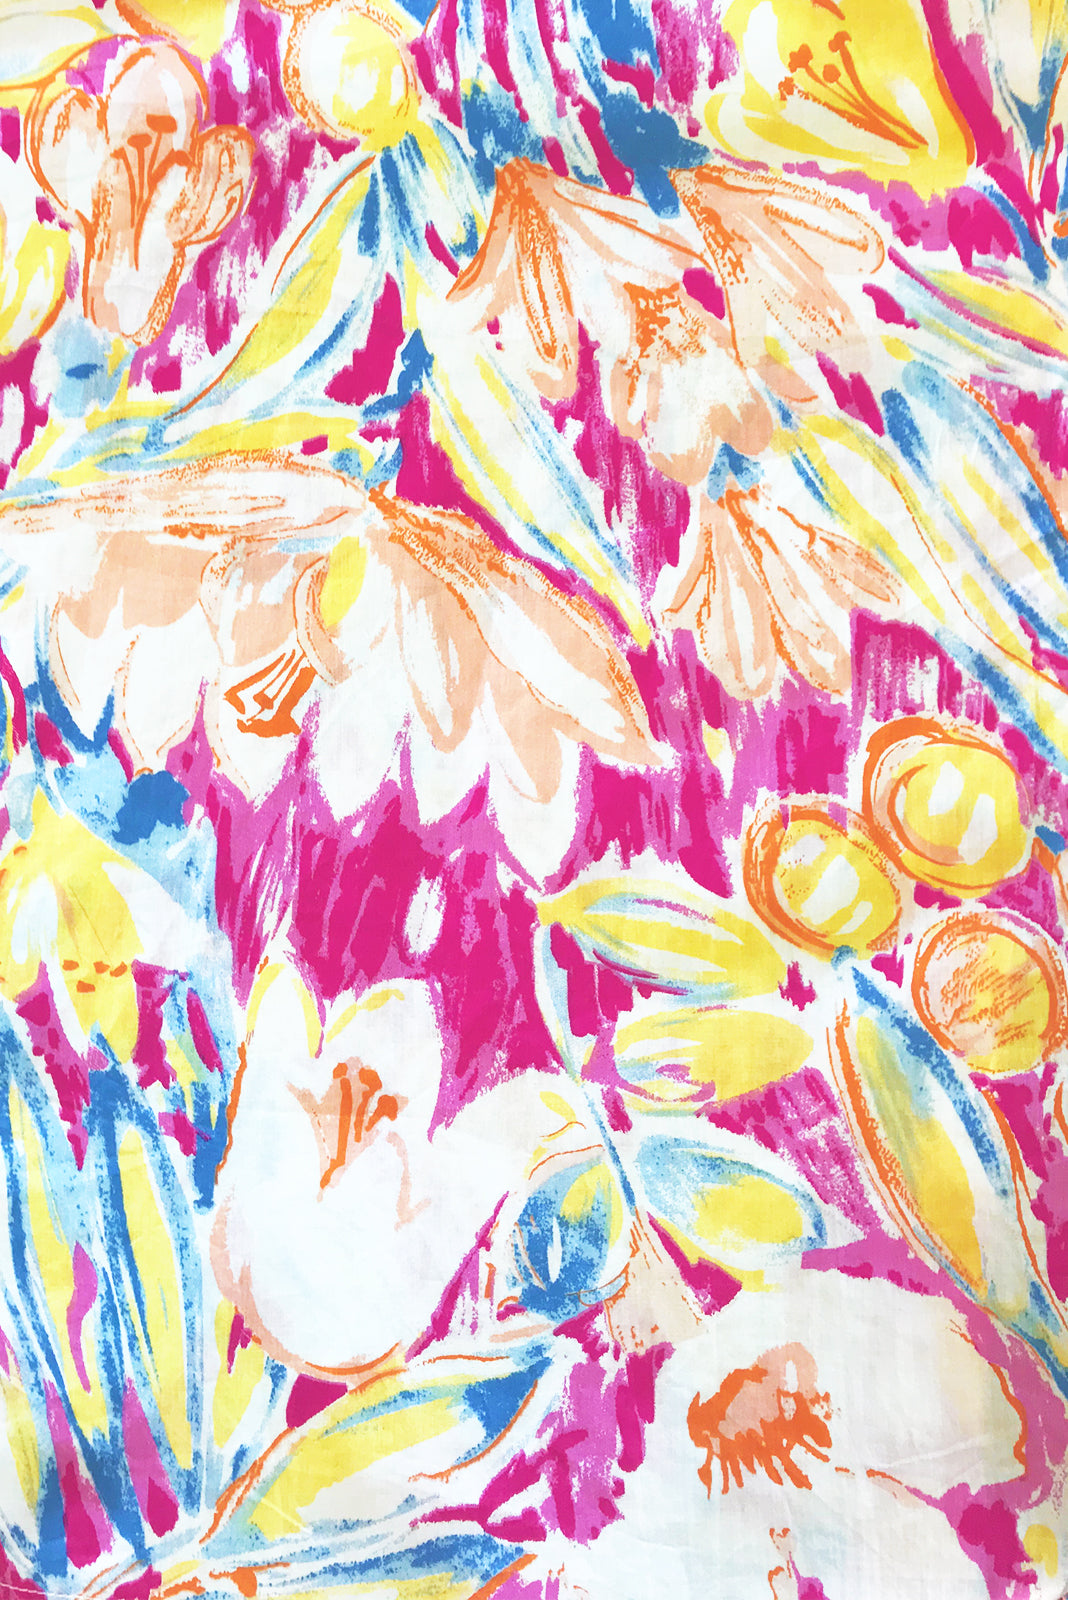 Fabric swatch of Midsummer Monet Pink Dress featuring  100% cotton poplin in pink, orange, yellow, white and lilac abstract floral print.